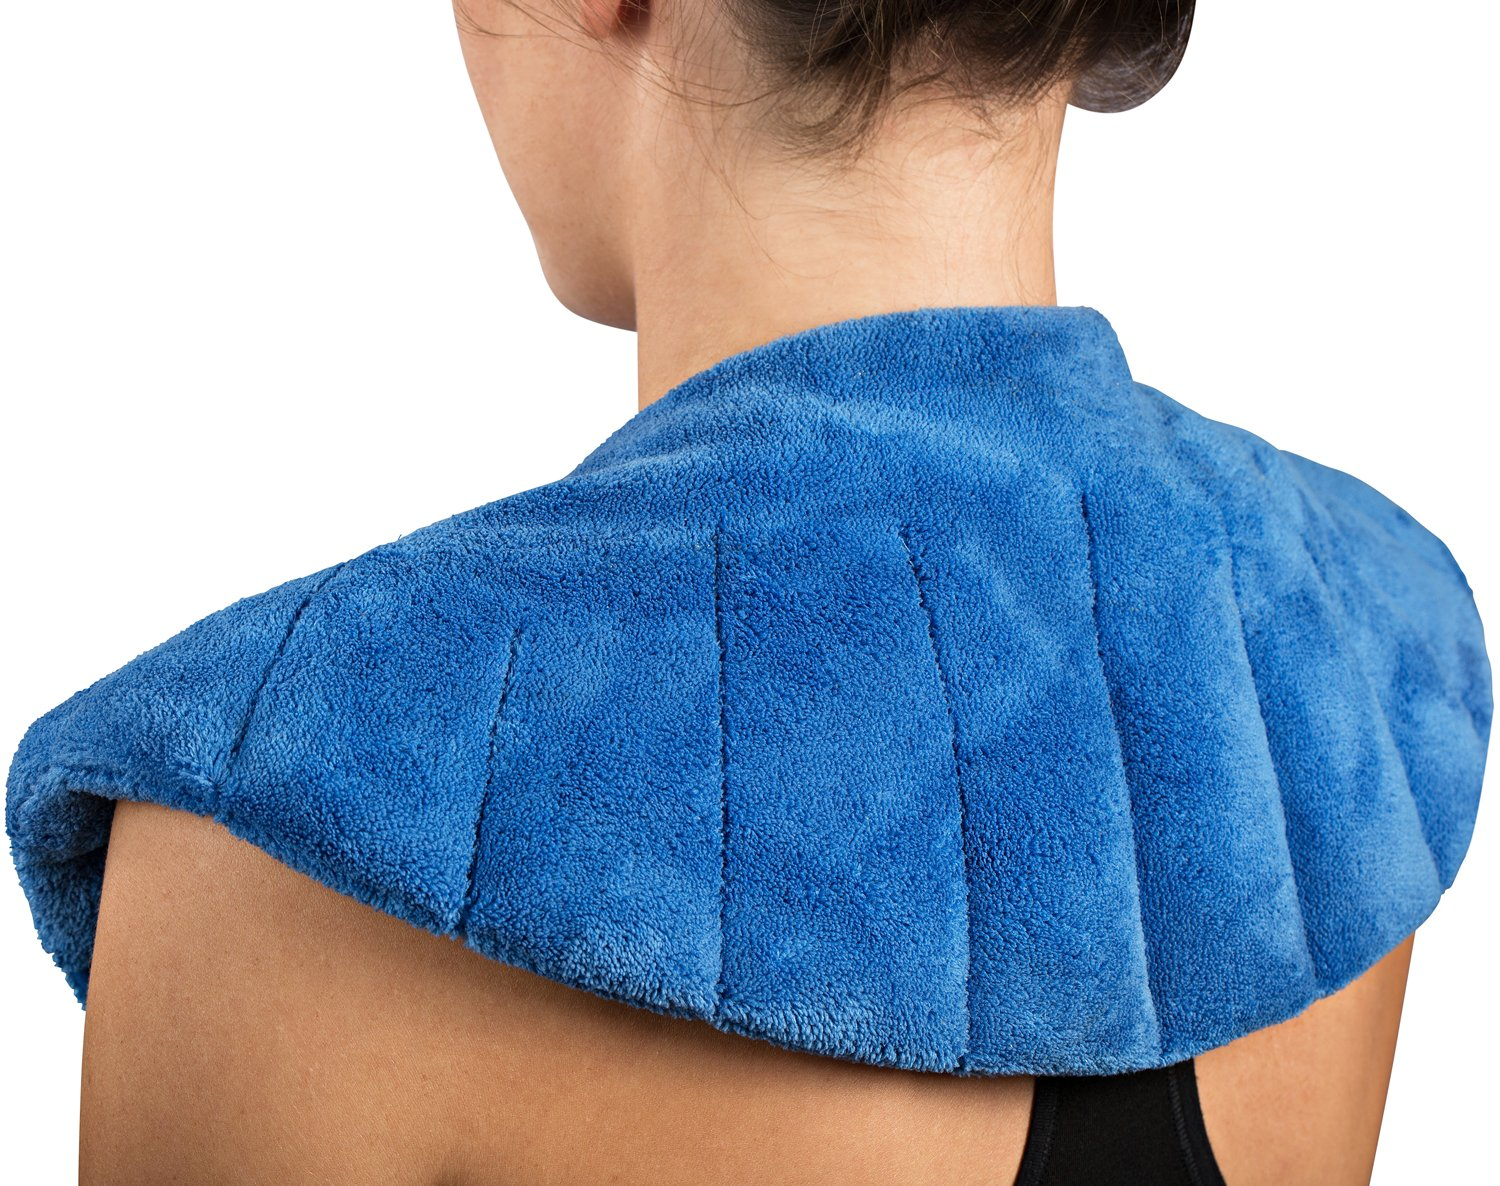 NatraCure Warming Shoulder and Body Wrap - 410-CAT- (w/ Rice Filling)